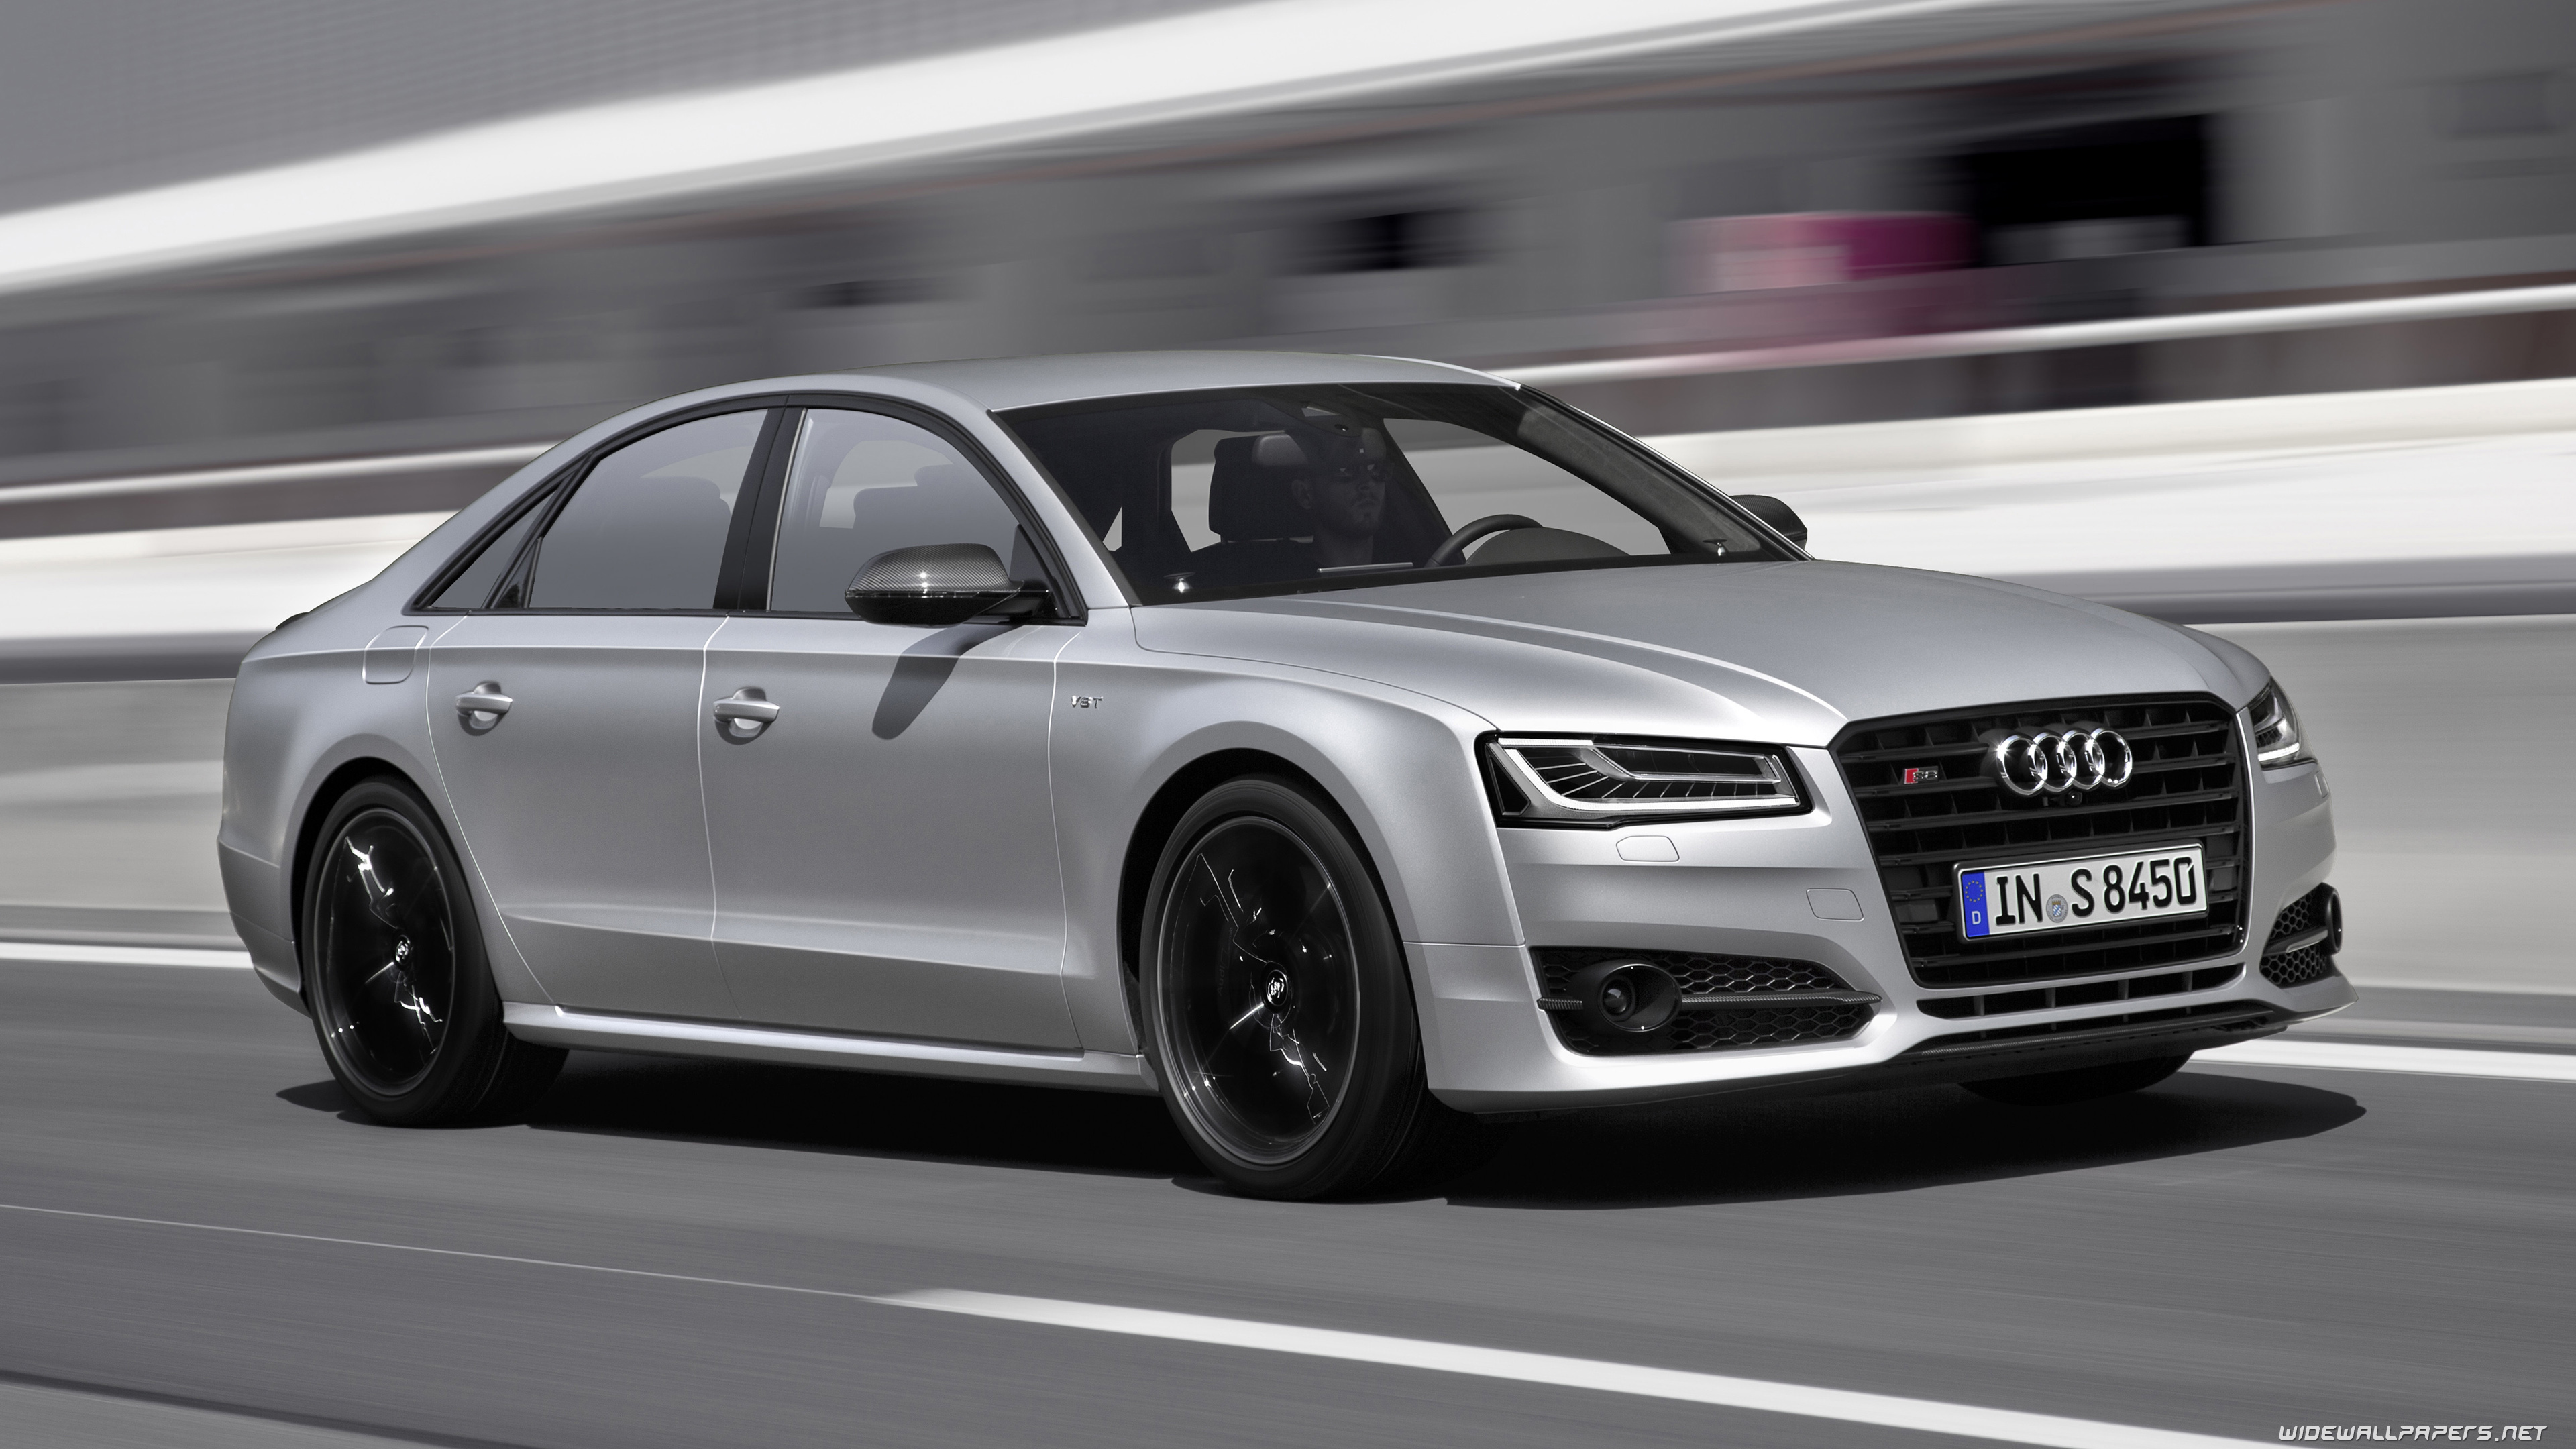 audi s8 cars desktop wallpapers 4k ultra hd. Black Bedroom Furniture Sets. Home Design Ideas